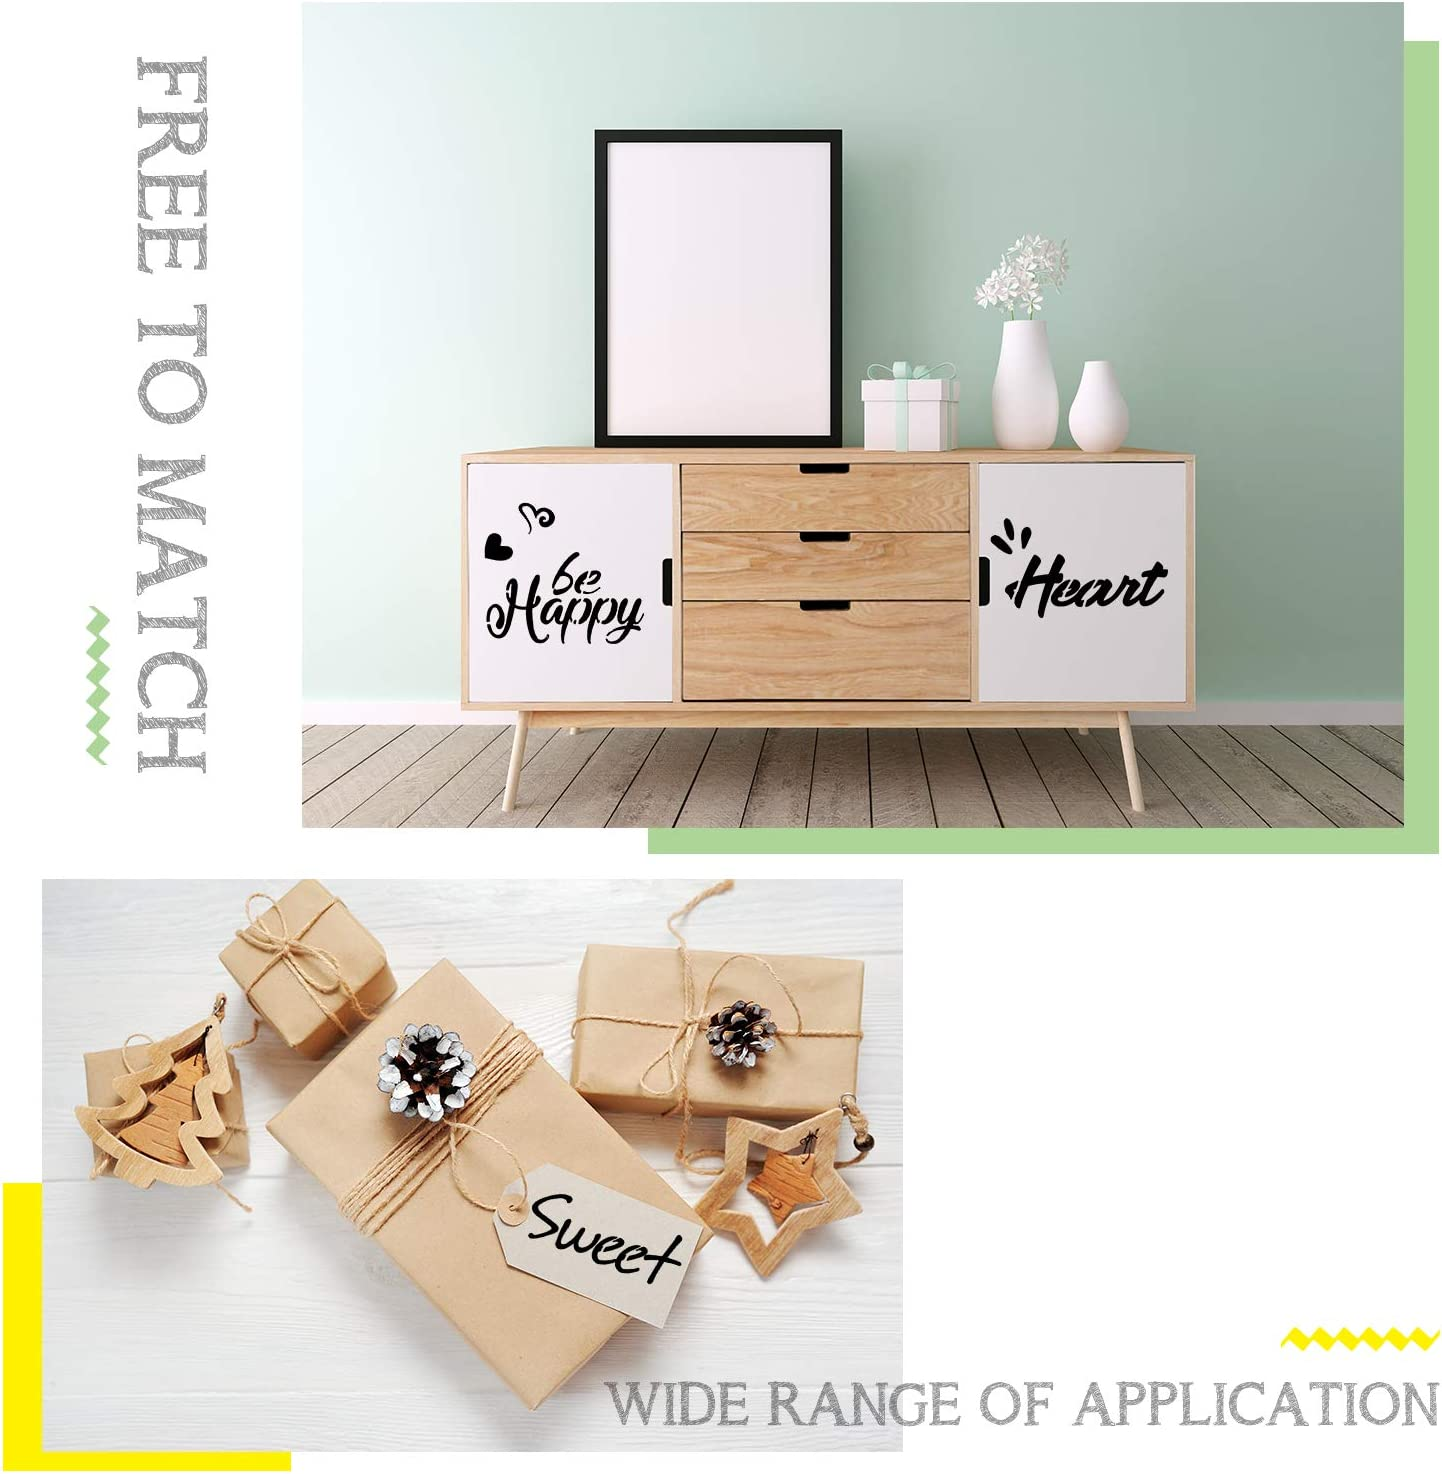 6 x 8 Inches Inspirational Word Stencils Template for Drawing Painting Spraying Wood Floors Furniture Paper Window Glass Door Wall Sign 2 Pieces Plastic Stencils for Painting Decor